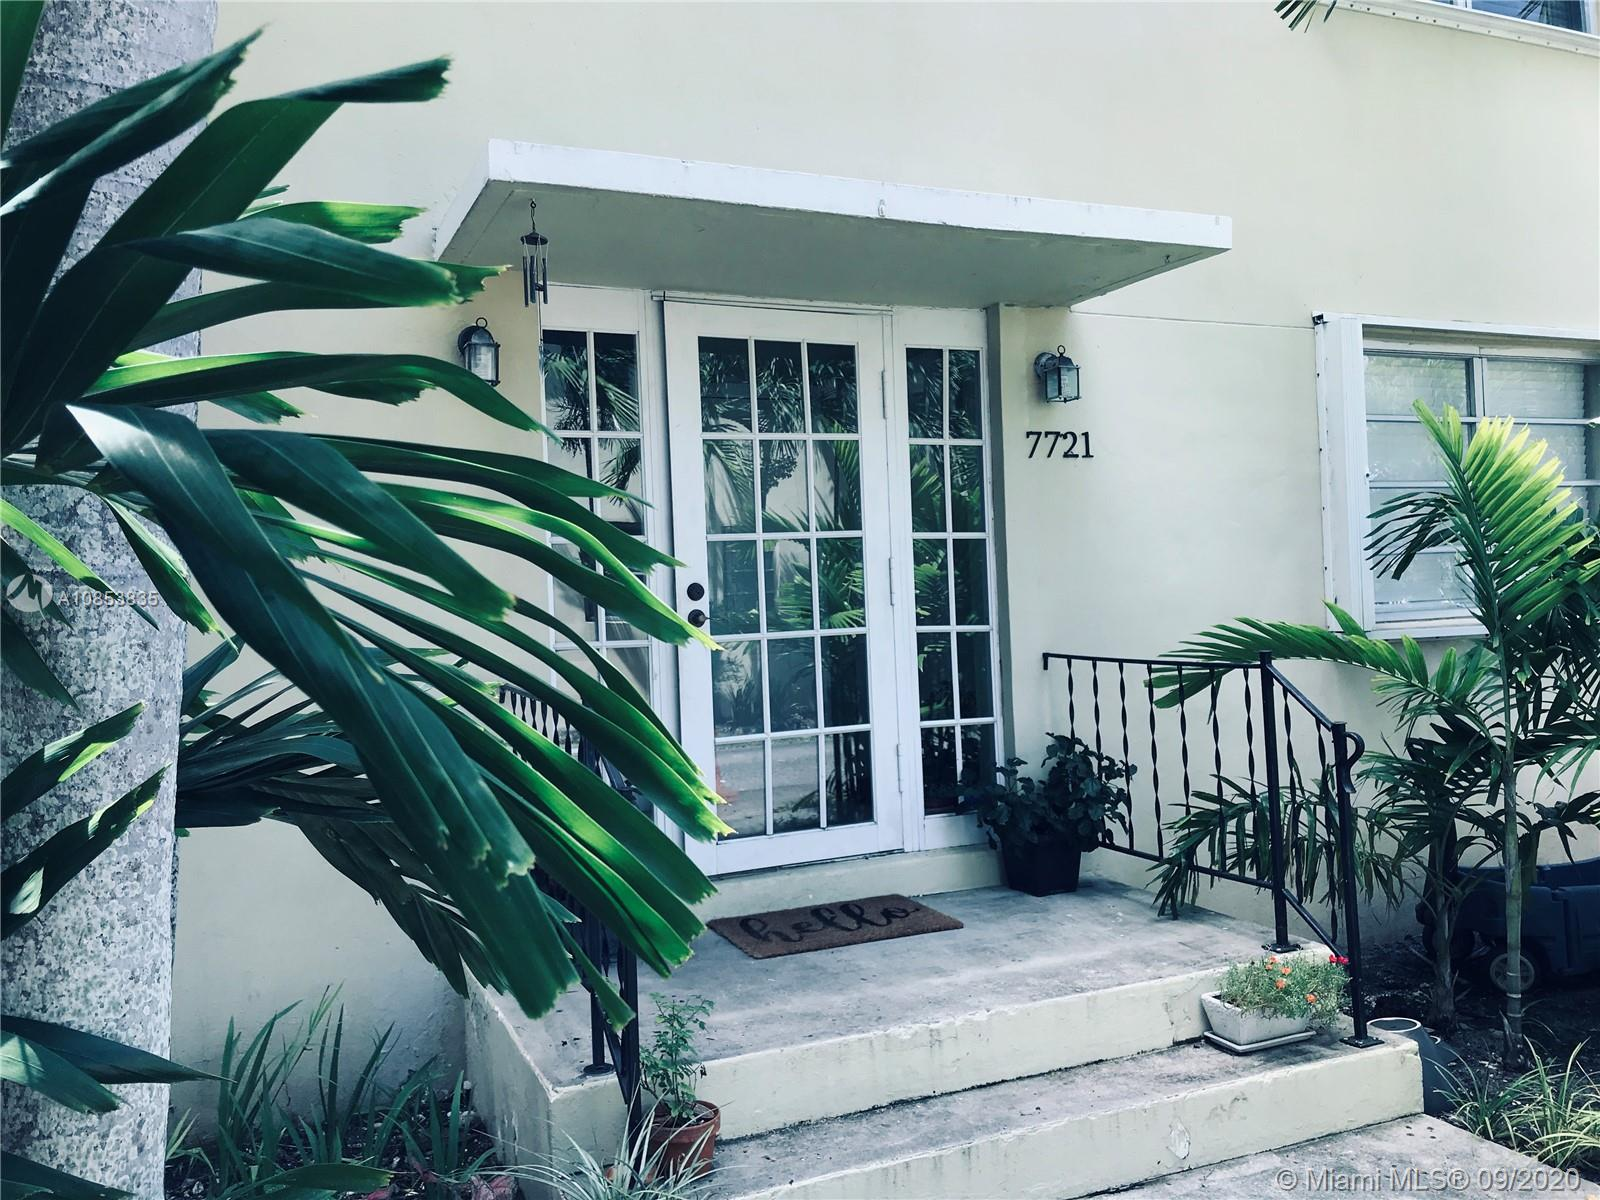 Very special offering! This condo in South Miami has it all! Its many upgrades include: custom cabinetry, Titan water heater, Trane A/C, updated electric panel, W/D, custom closets, polished hardwood floors, alarm system, underground wiring, hurricane shutters, home warranty plan.  Also comes w/assigned parking, low maintenance, view of pool & gardens. Blocks from all that SOMI offers. Great schools nearby in neighborhood rated in top 10 in S FL communities. EZ to show!